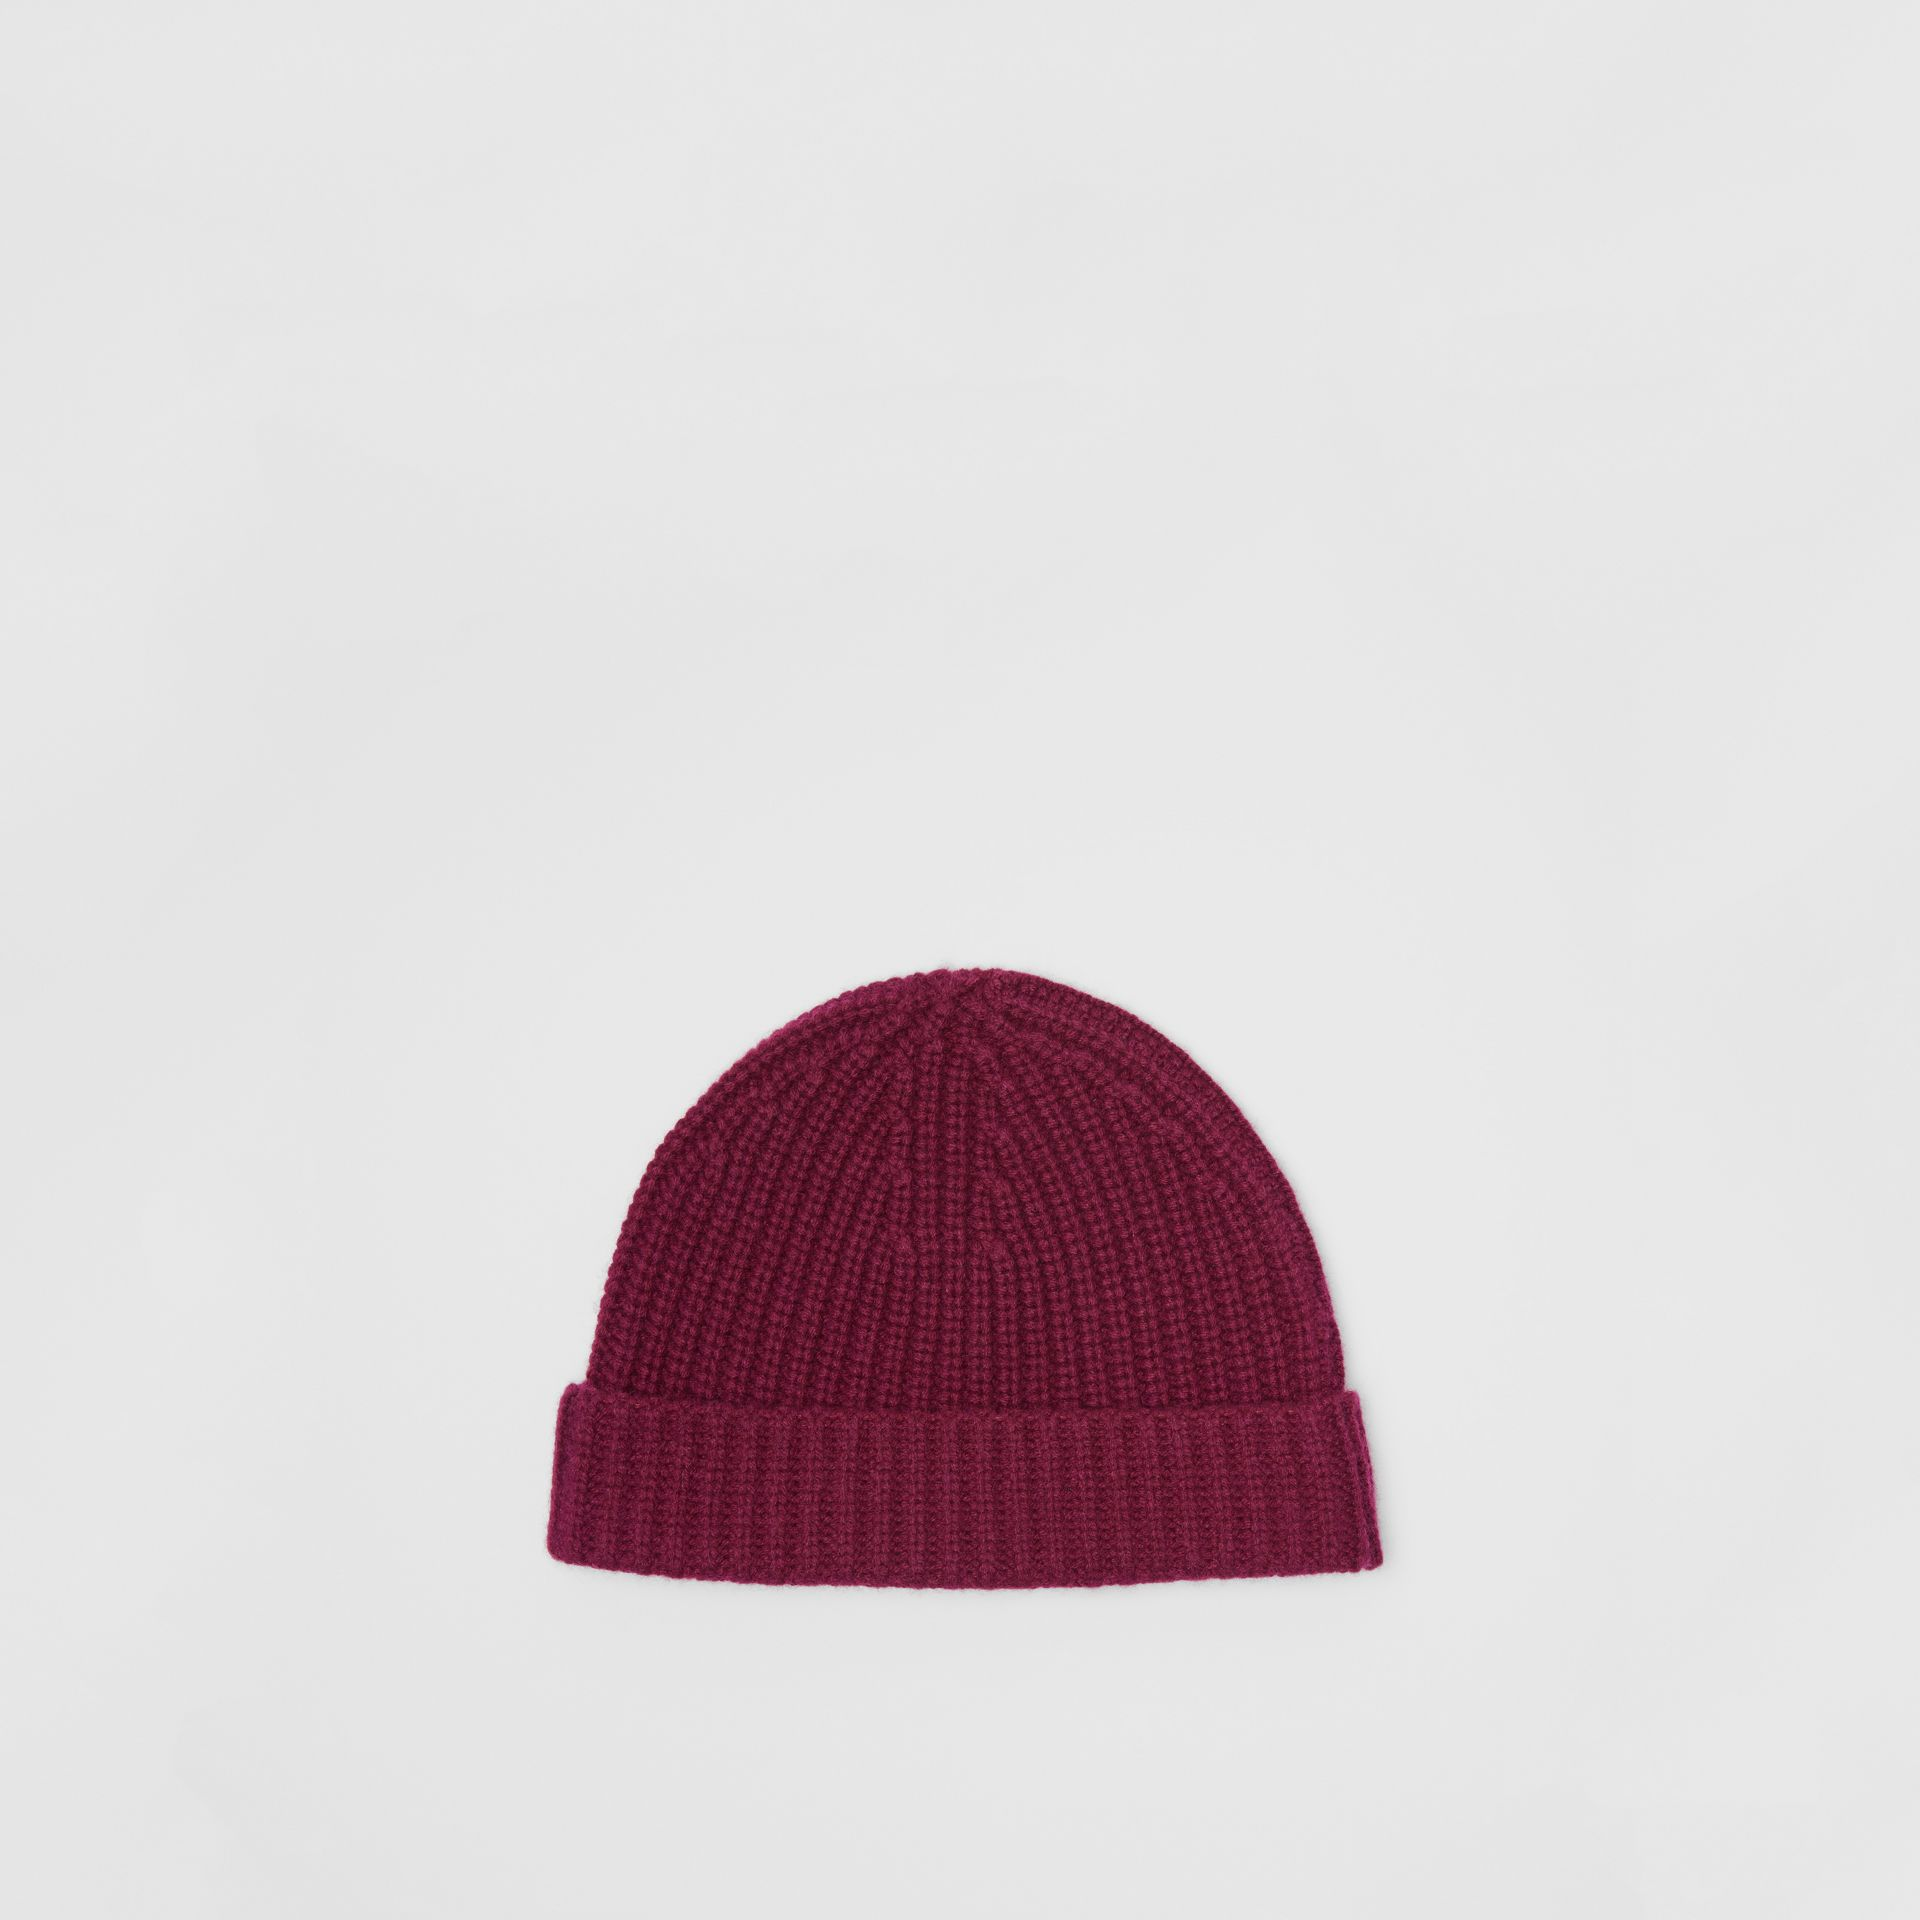 Rib Knit Cashmere Beanie in Dark Elderberry | Burberry - gallery image 4